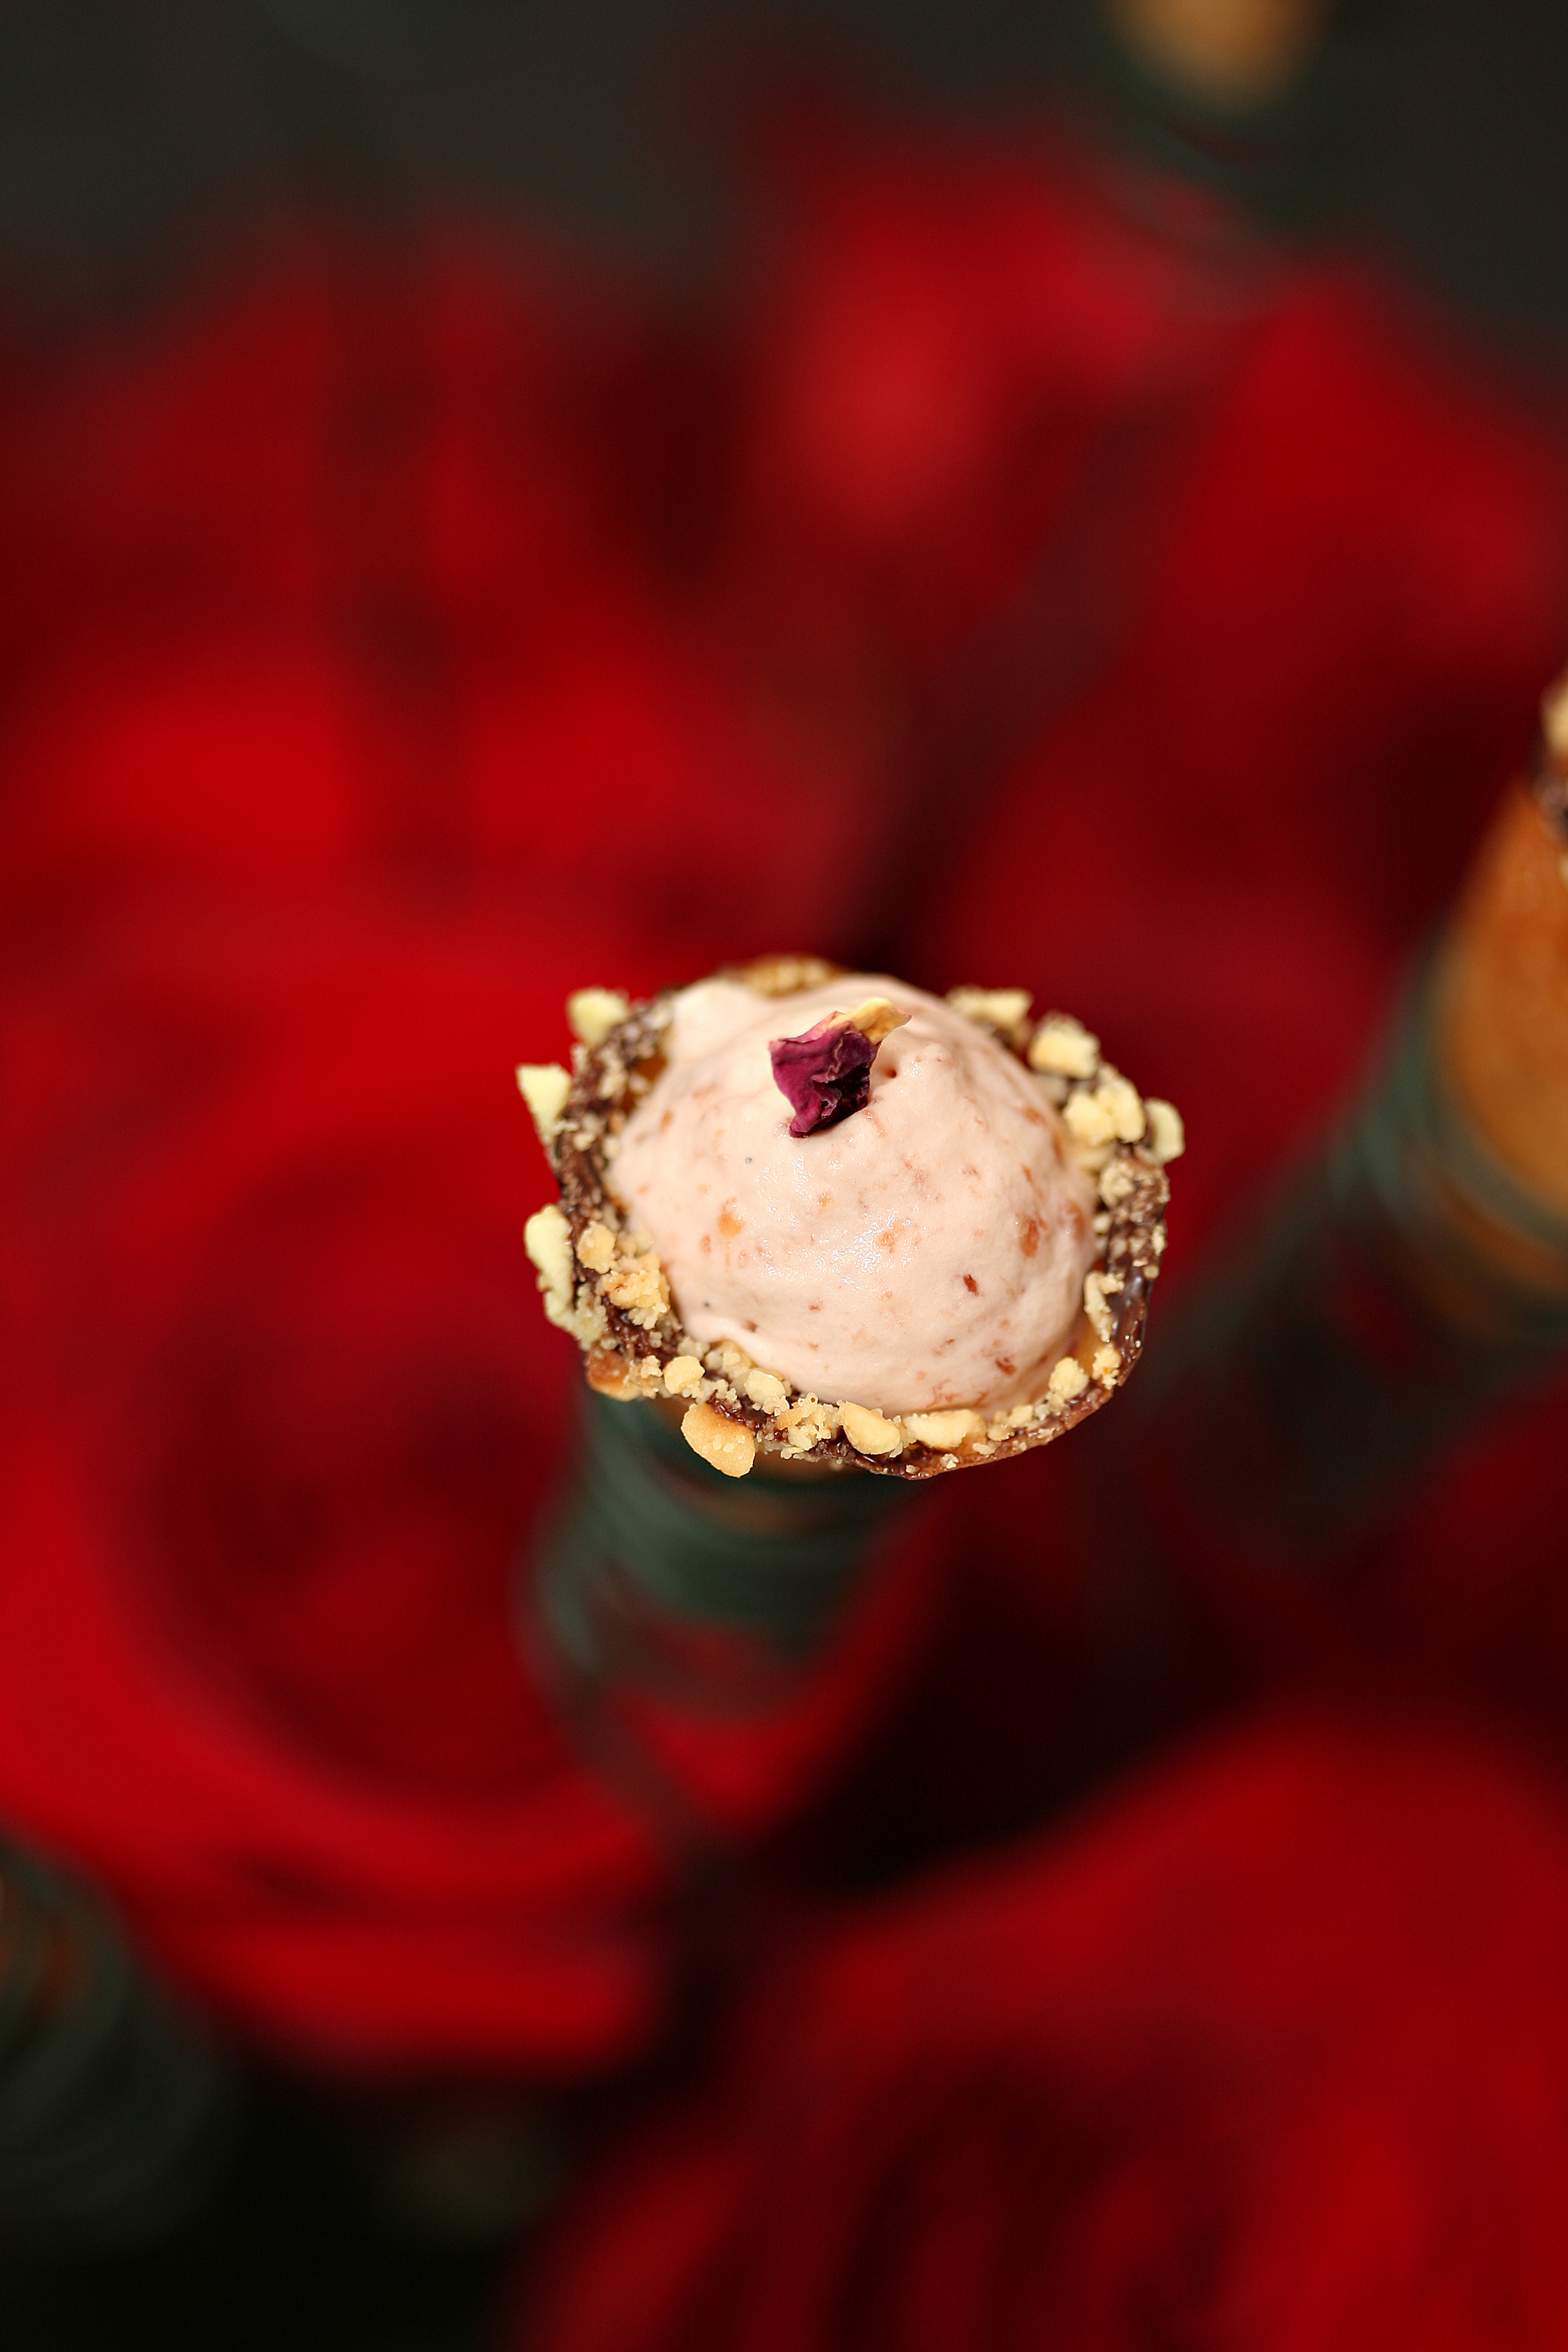 Rose ice cream with hazelnut edges cornets served in abowl of roses